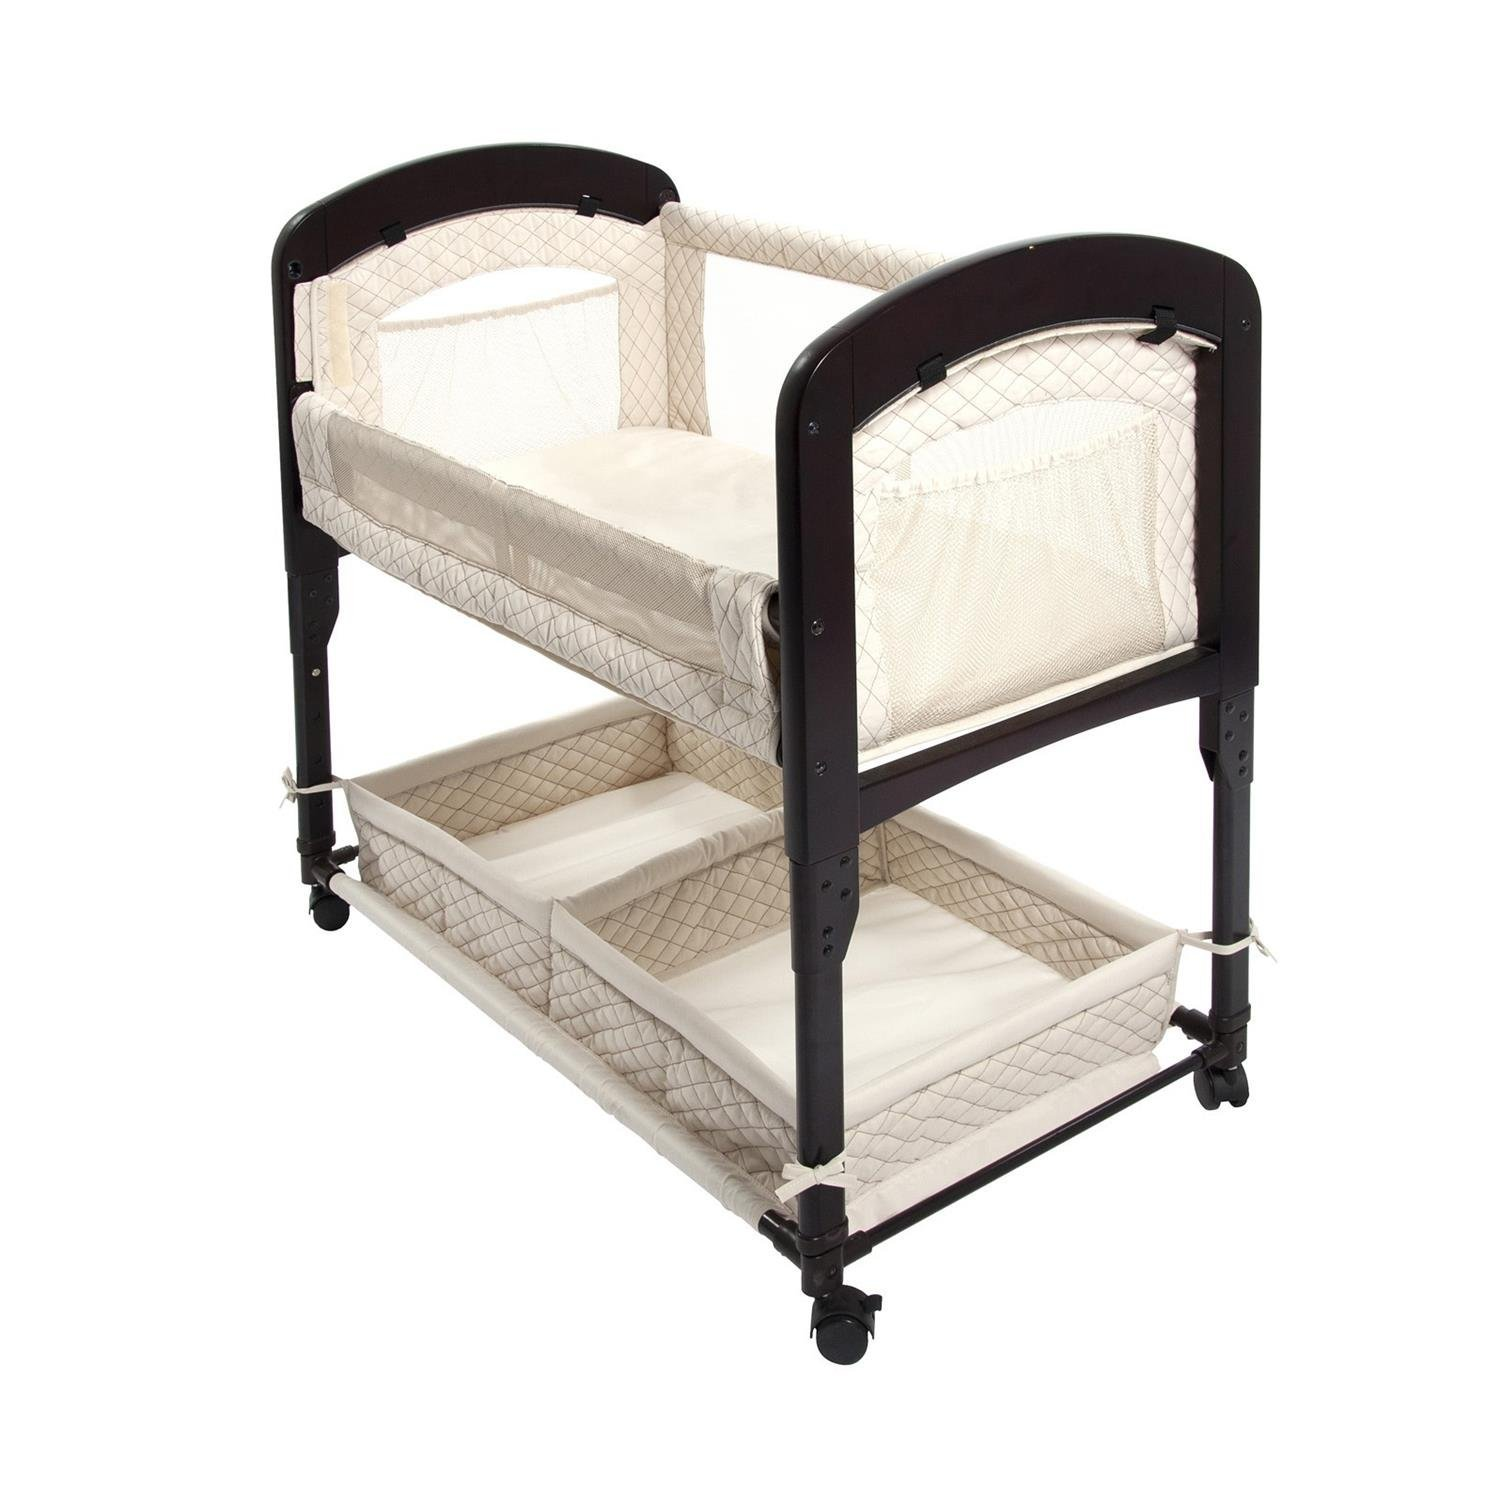 Arm's Reach Cambria Co-Sleeper Wood Clearvue Bassinet